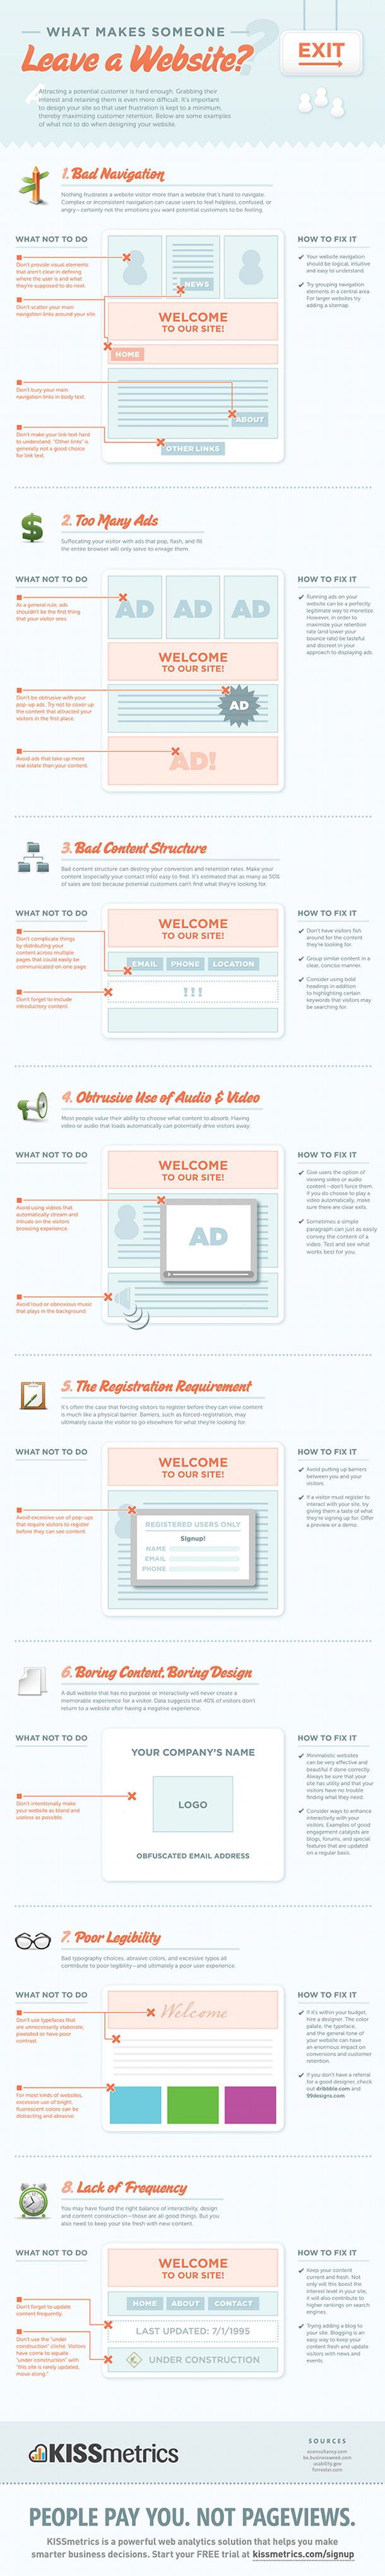 Leaves a website - infographic